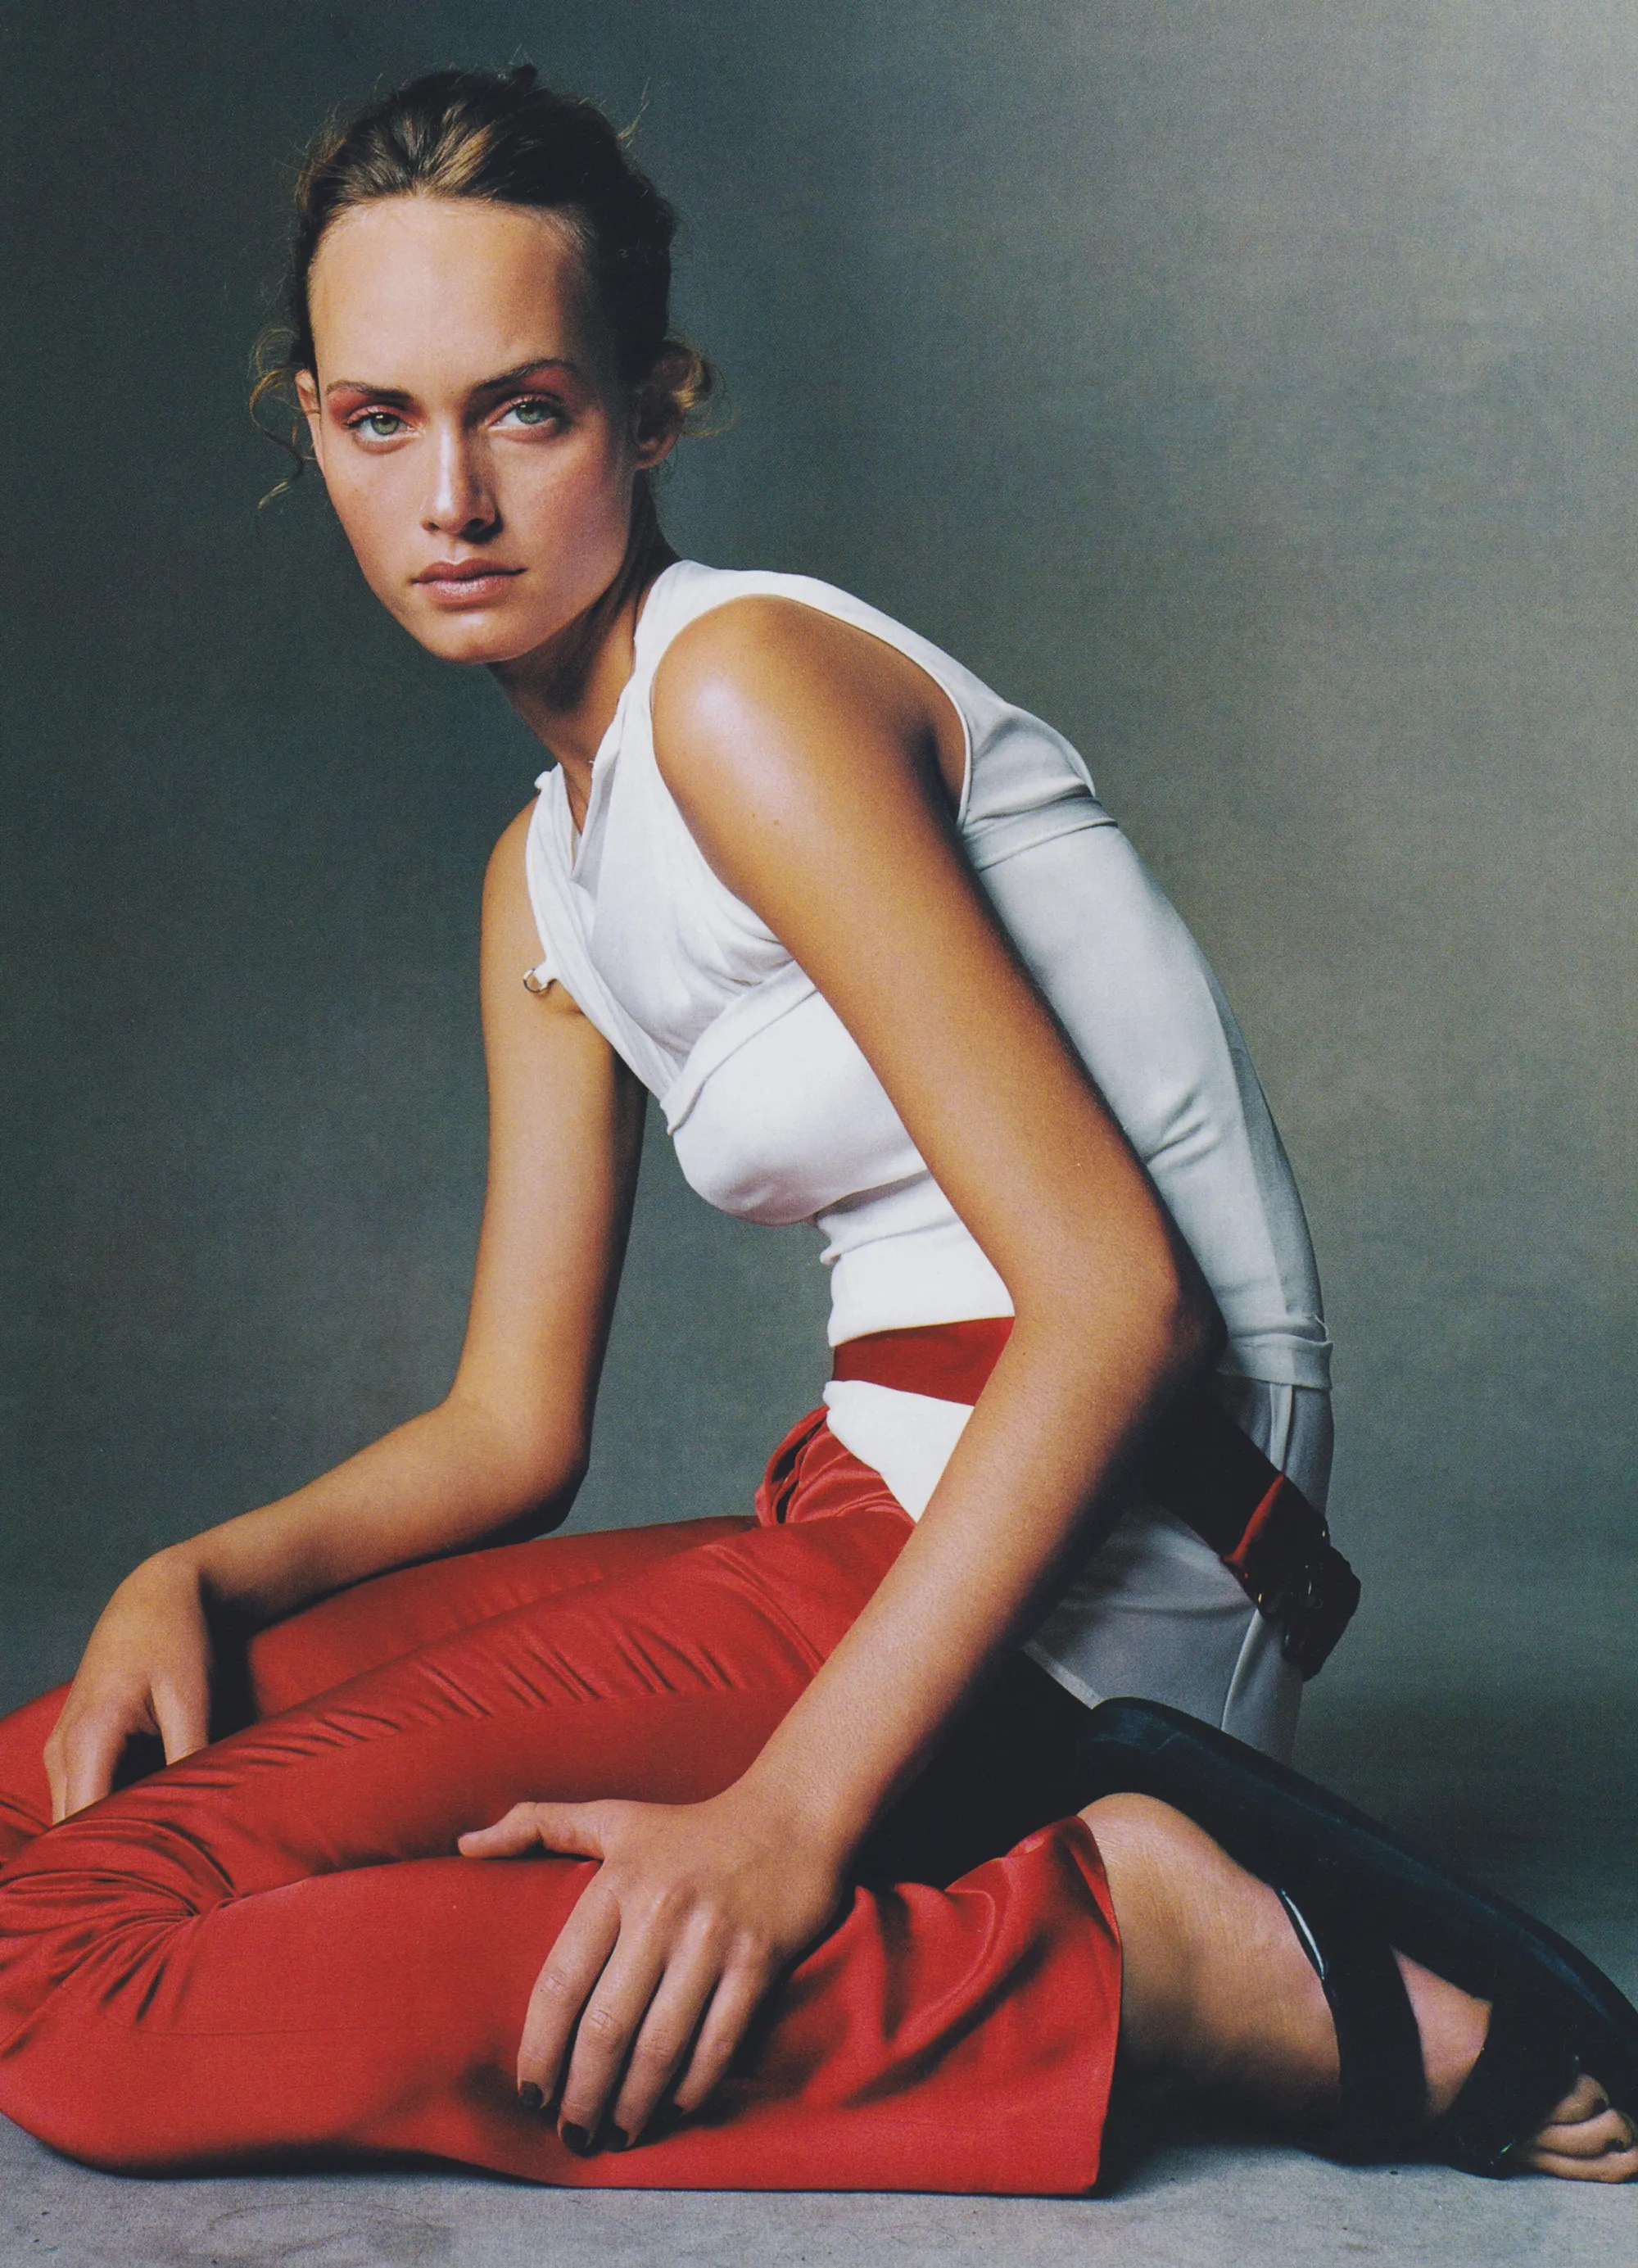 Helmut Lang The Most Important Fashion Designer of the